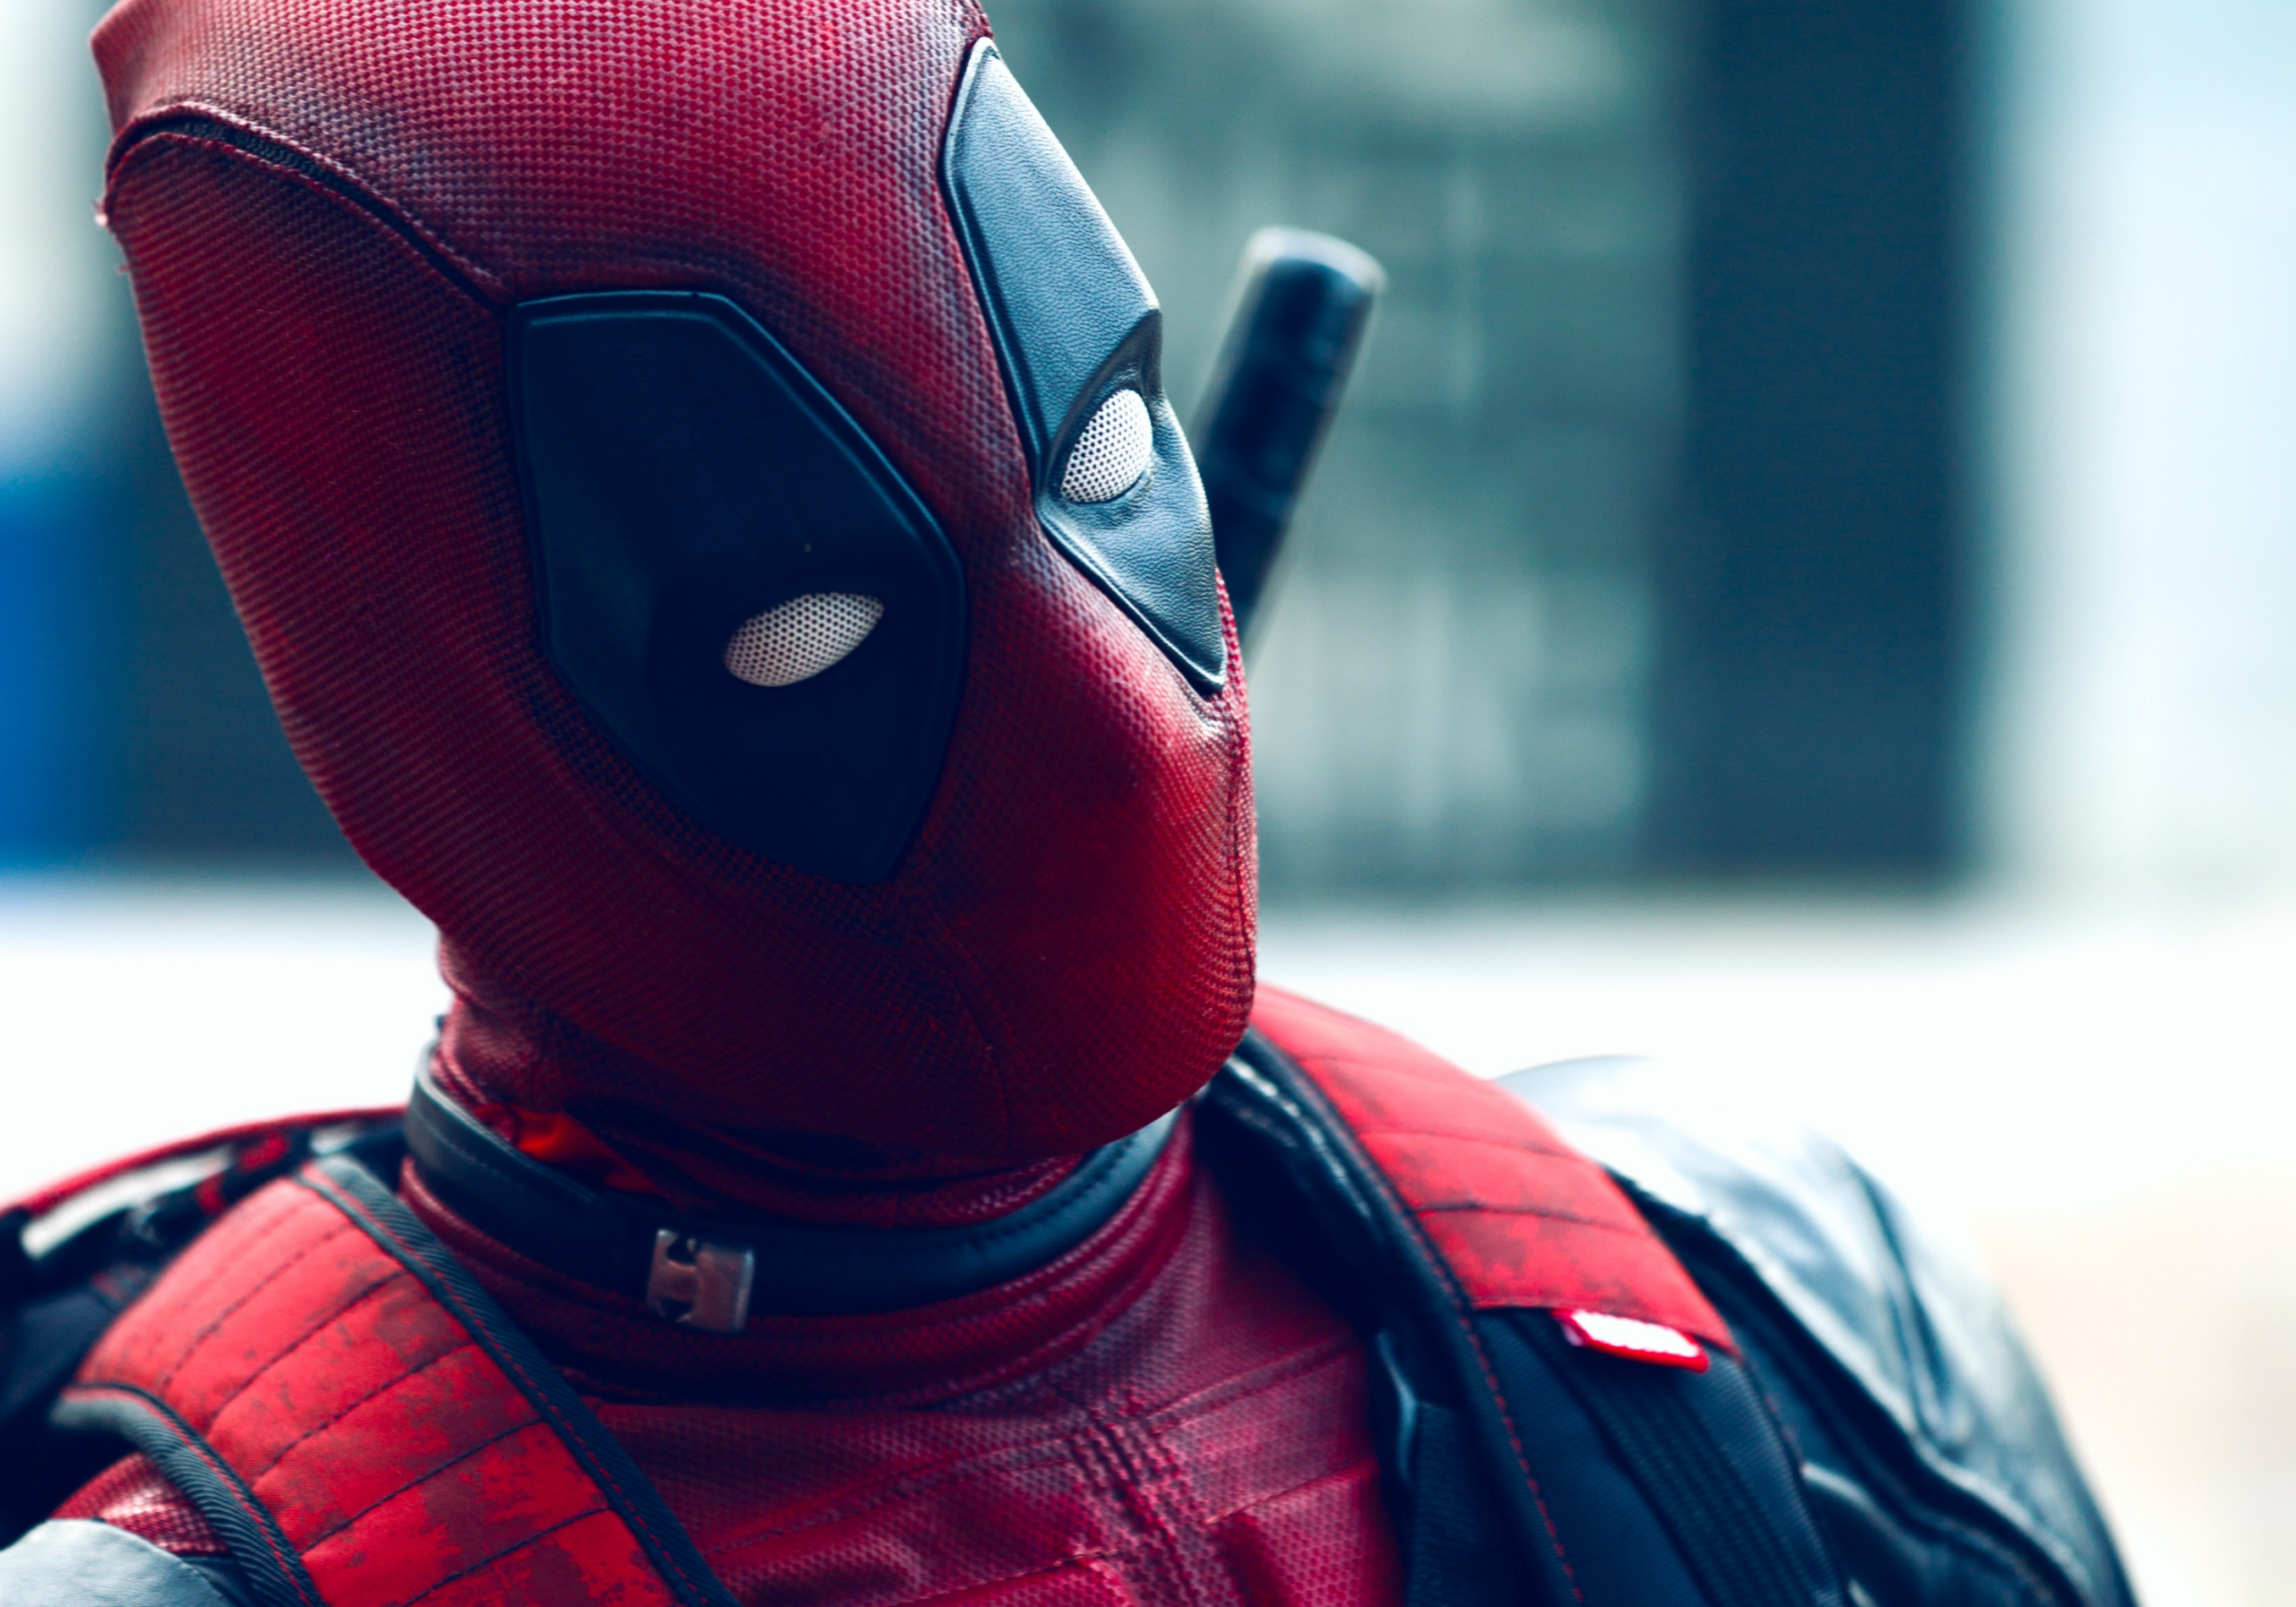 8dd91802d6a Ryan Reynolds agreed to the reboot of Deadpool 2 on the condition that part  of the ticket sales goes directly to charity  Fudge Cancer